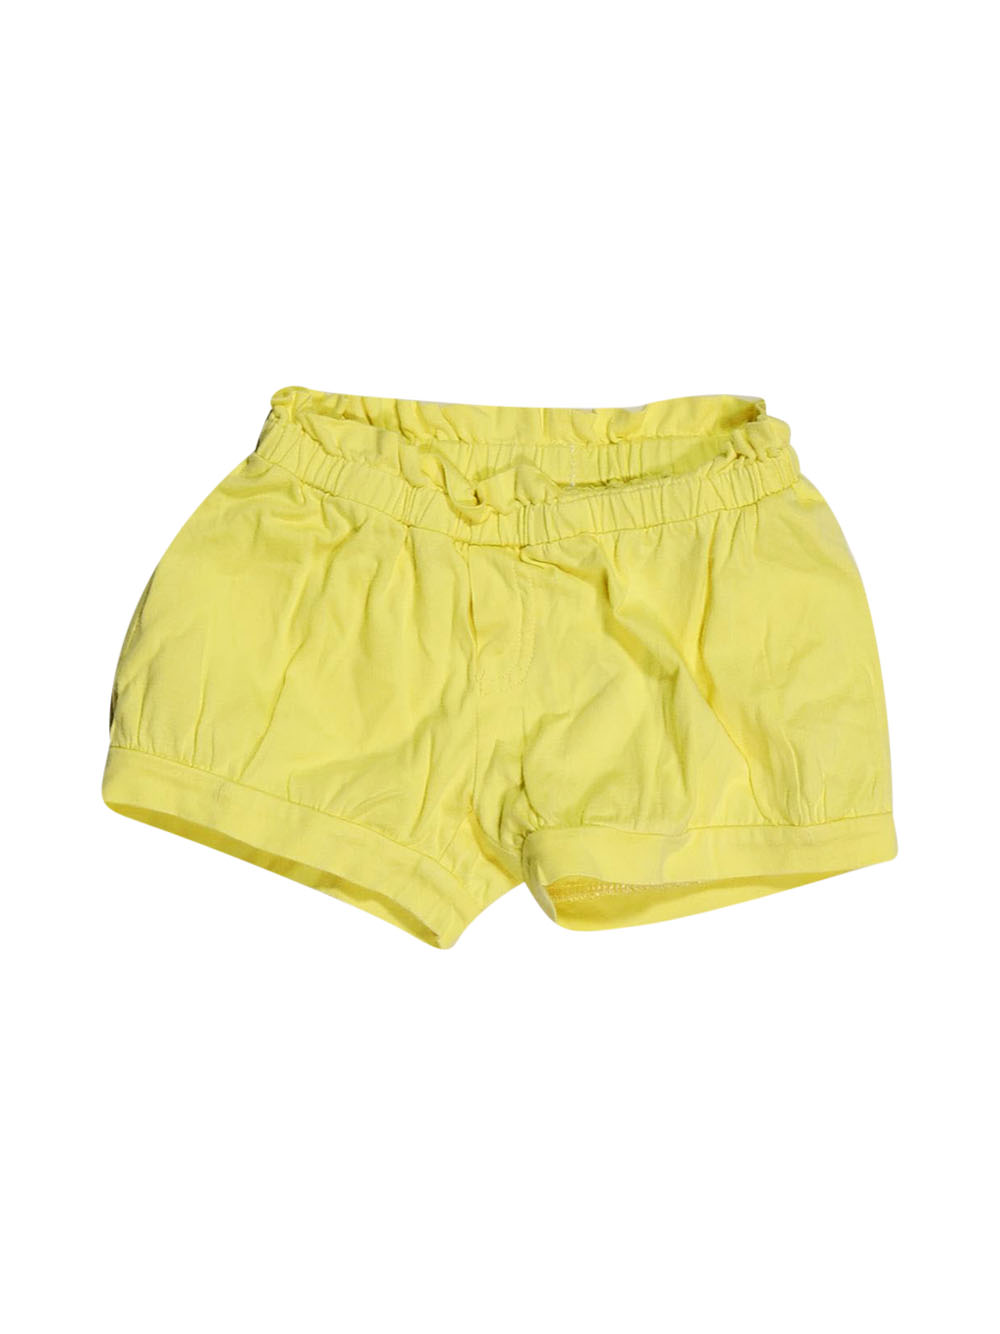 Front photo of Preloved msk Yellow Girl's shorts - size 4-5 yrs